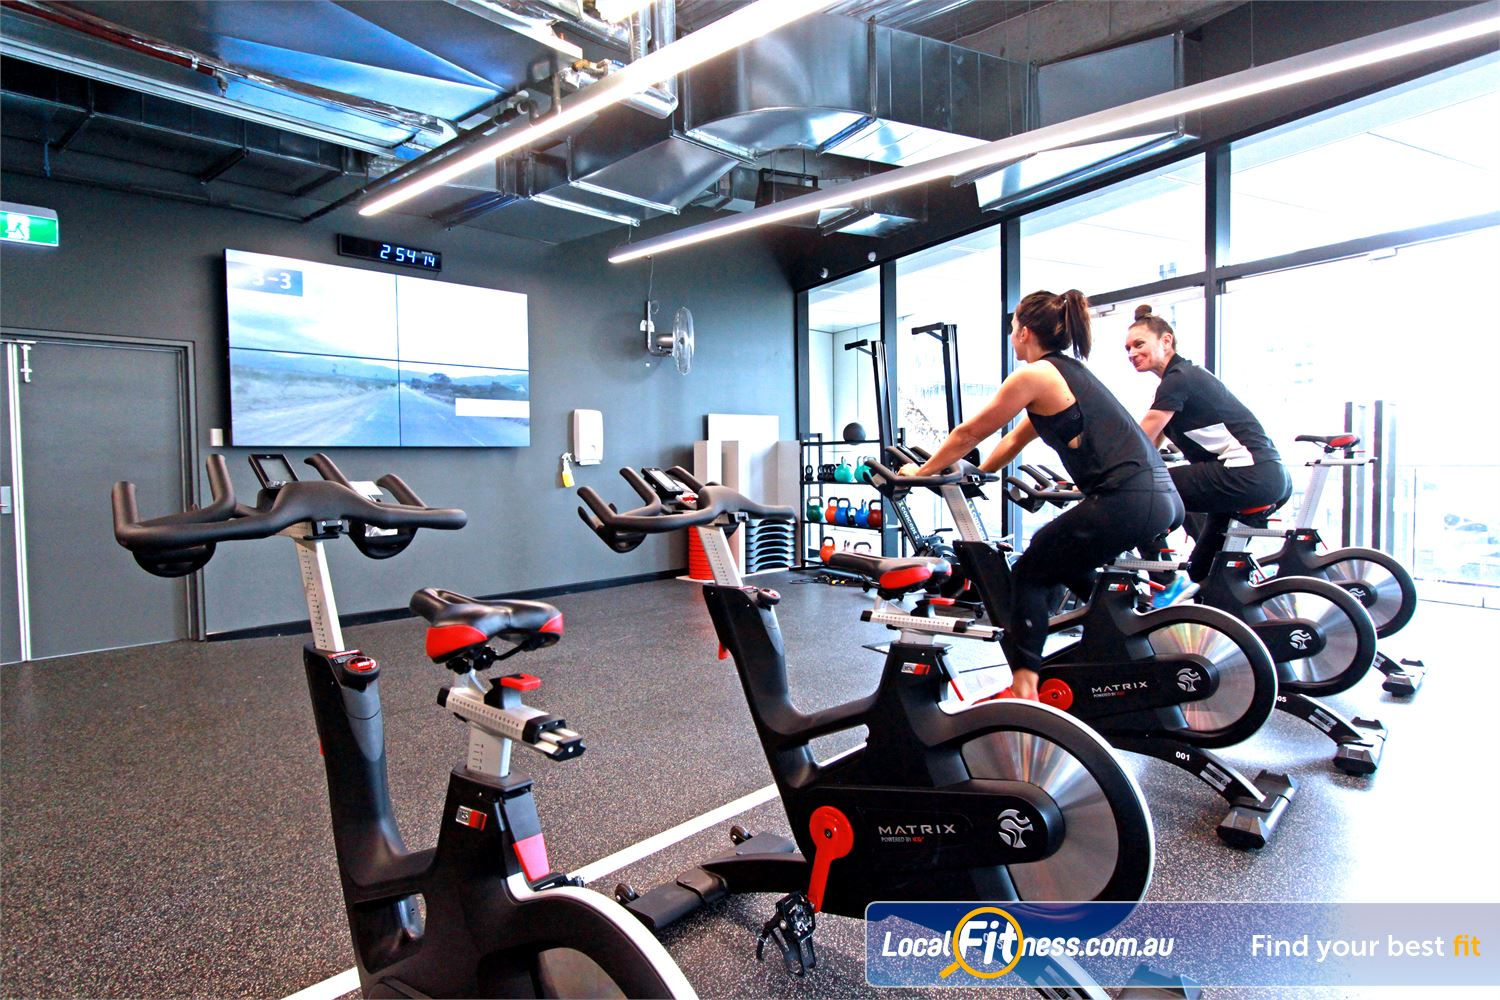 Goodlife Health Clubs Near North Melbourne State of the art cycle studio with giant screen to enhance your ride.